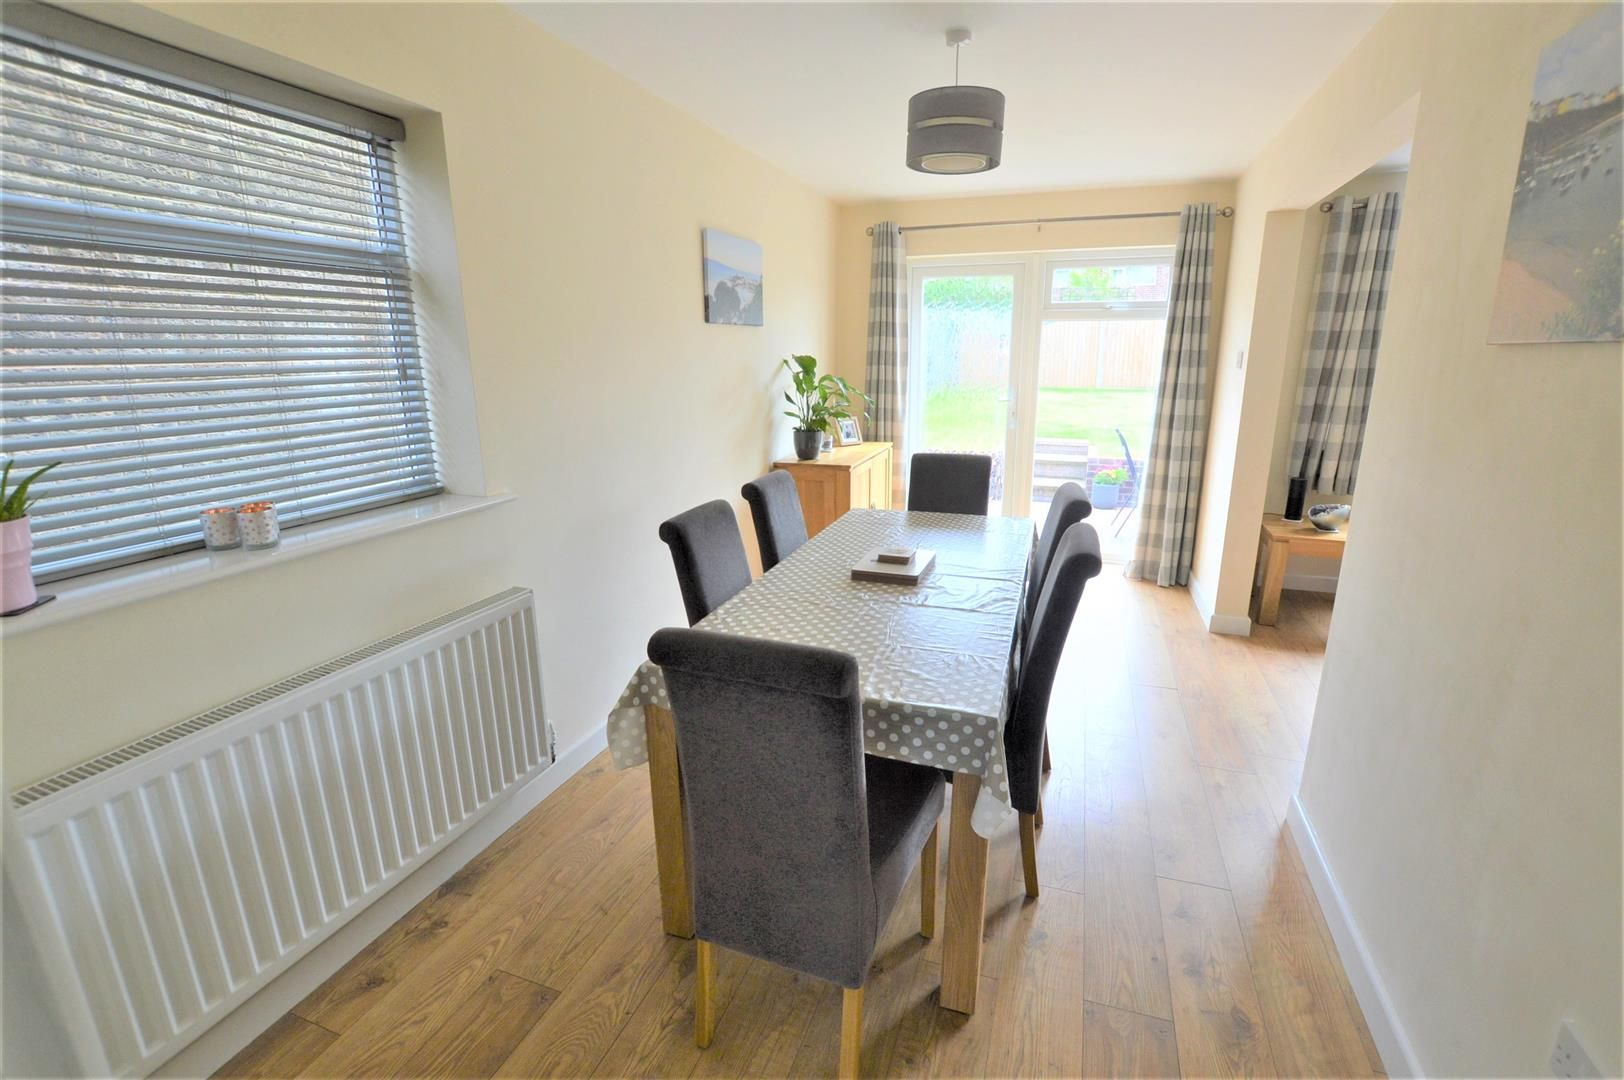 3 bed end-of-terrace for sale in Leominster  - Property Image 3